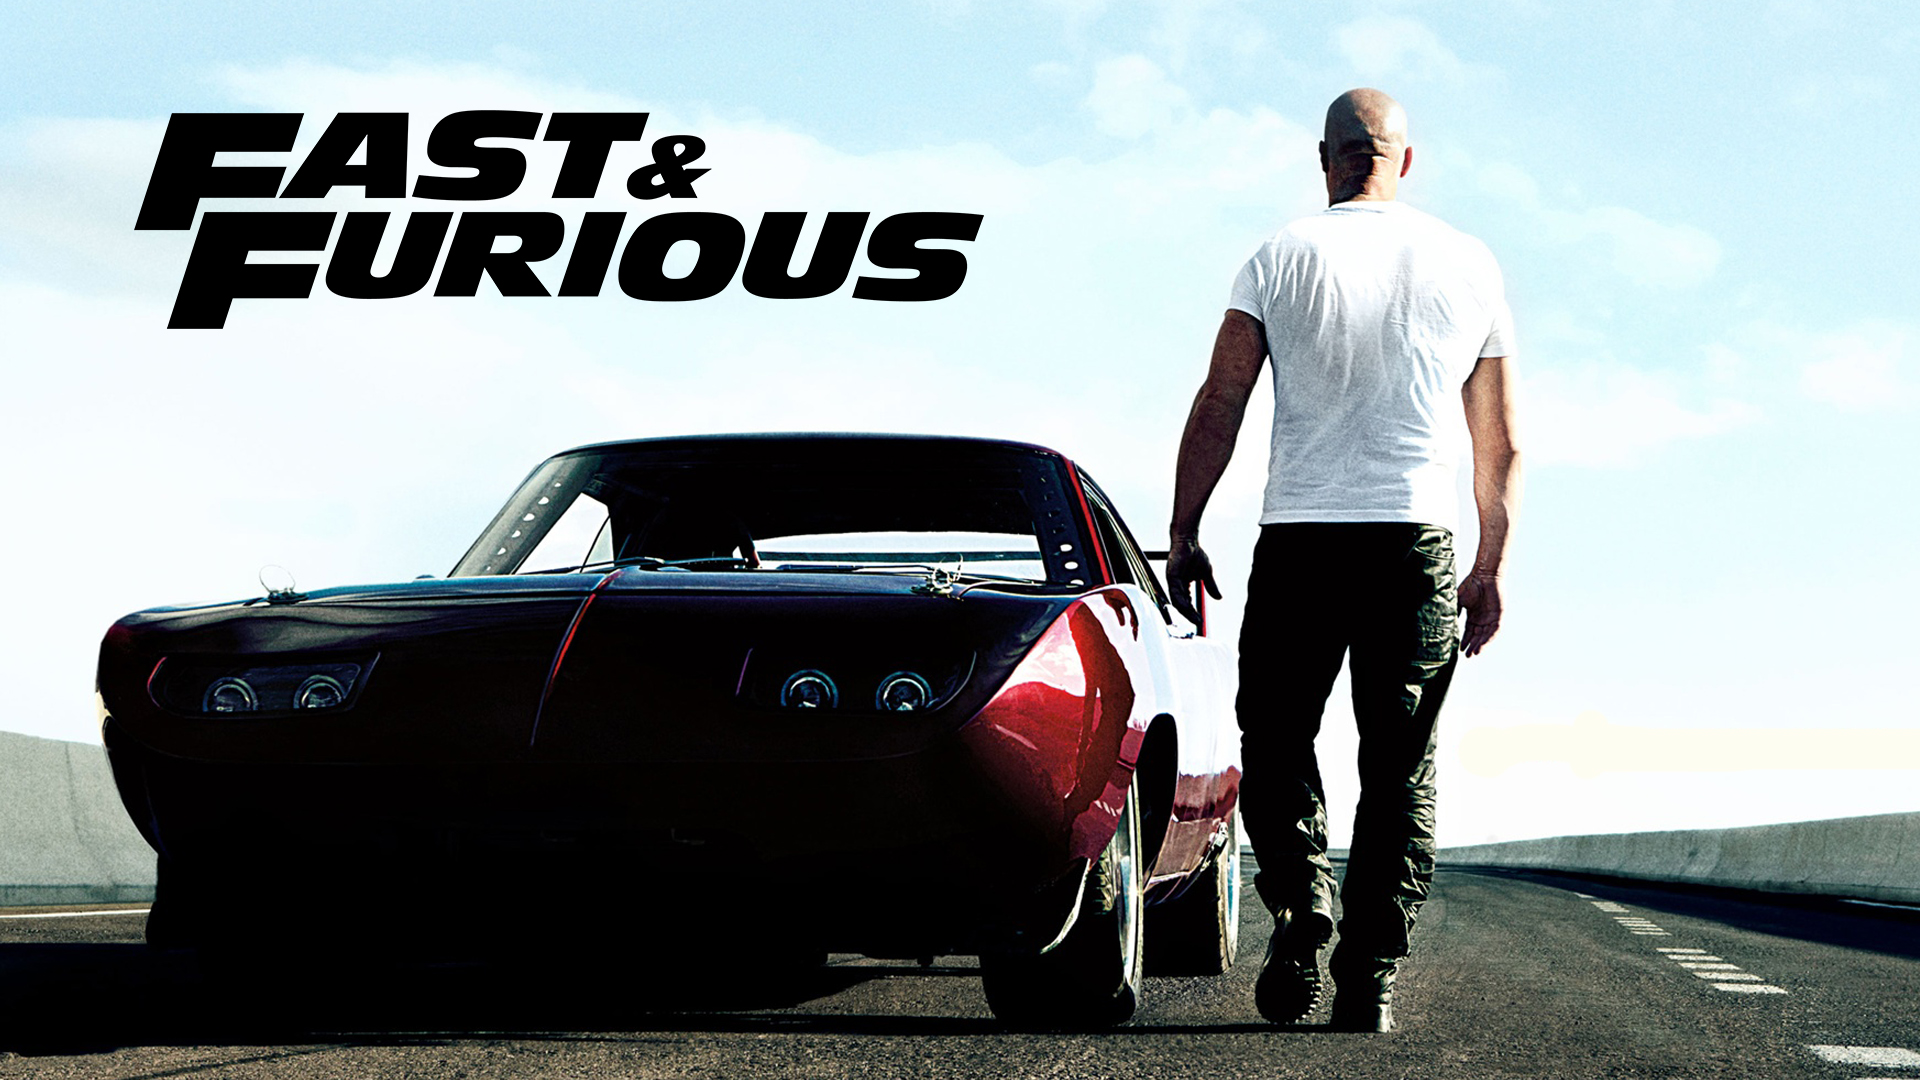 Fast and Furious trivia fb event 2